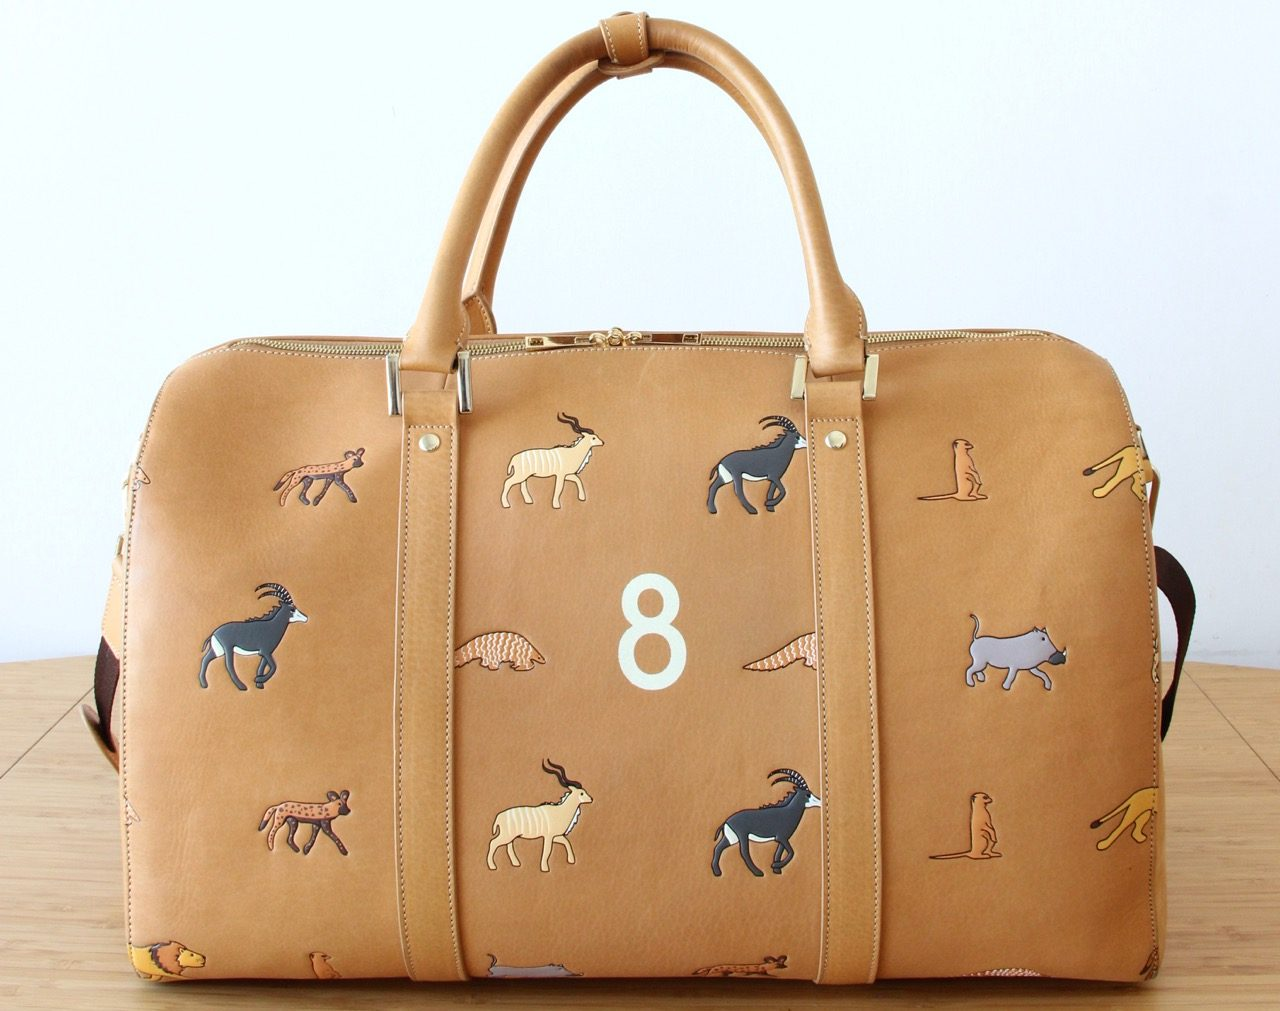 Savanna-Bag-n.-8-4-1-e1489967180670